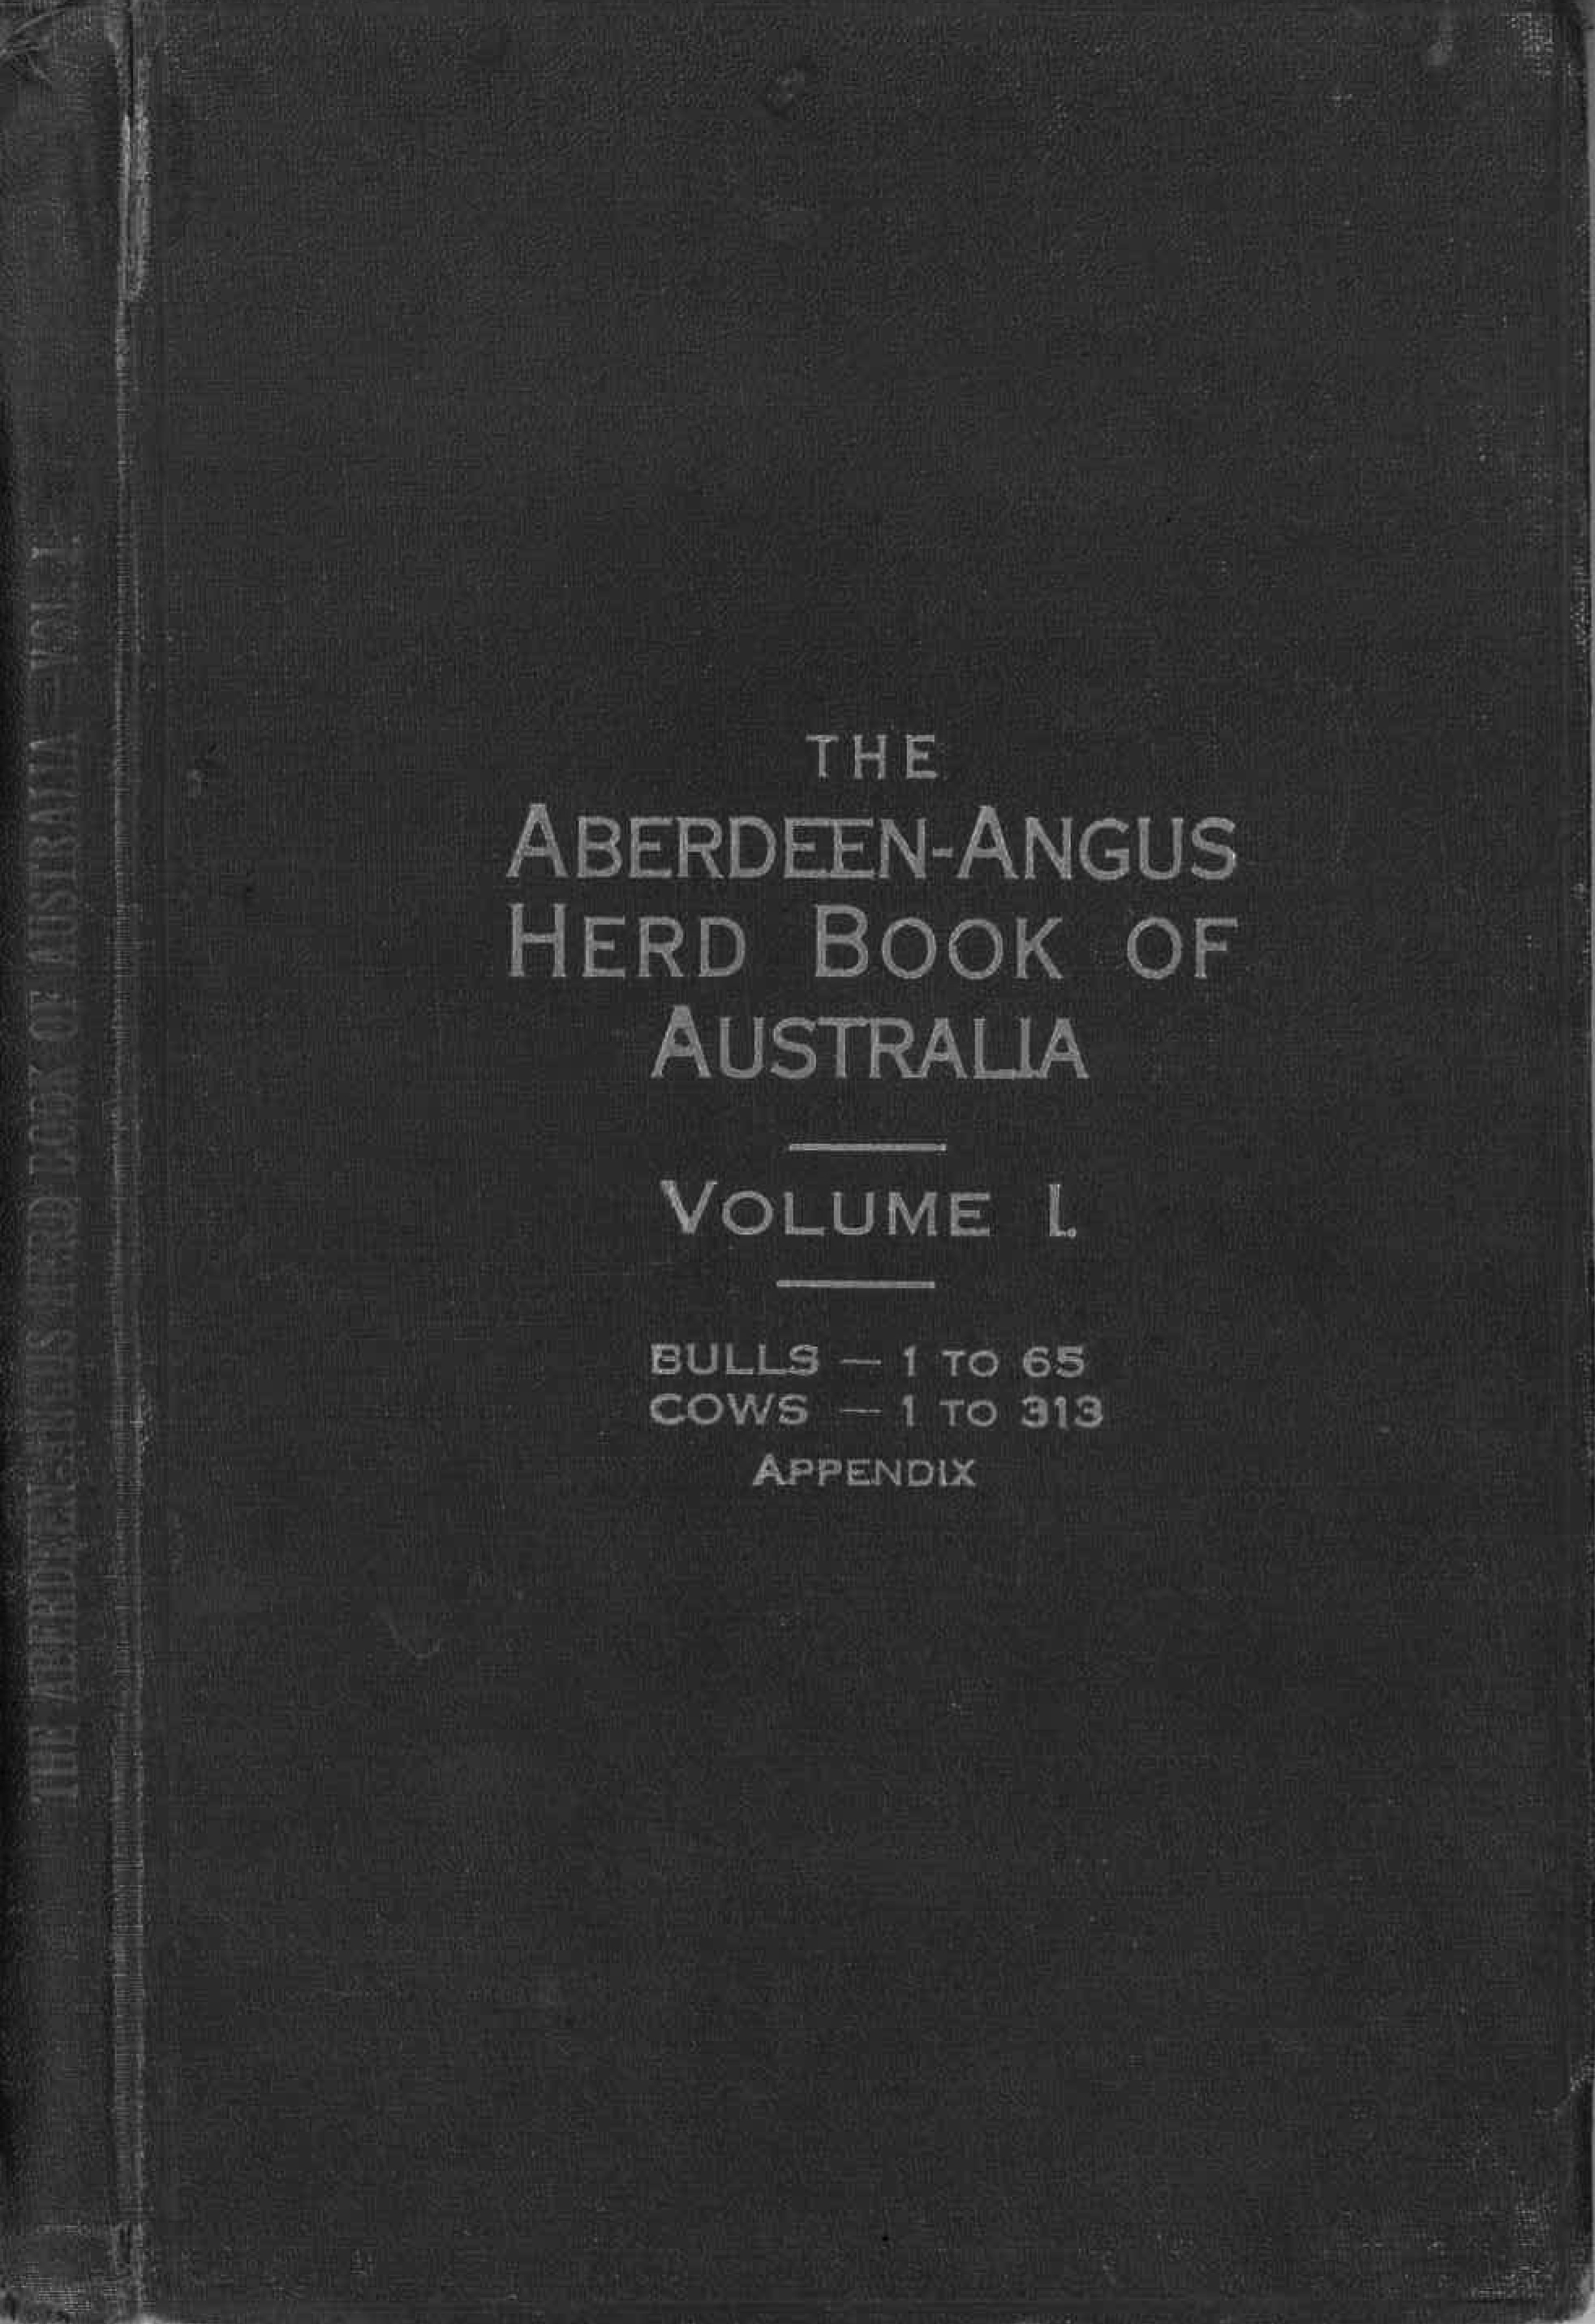 First Edition of the Abeerdeen-Angus Herd Book